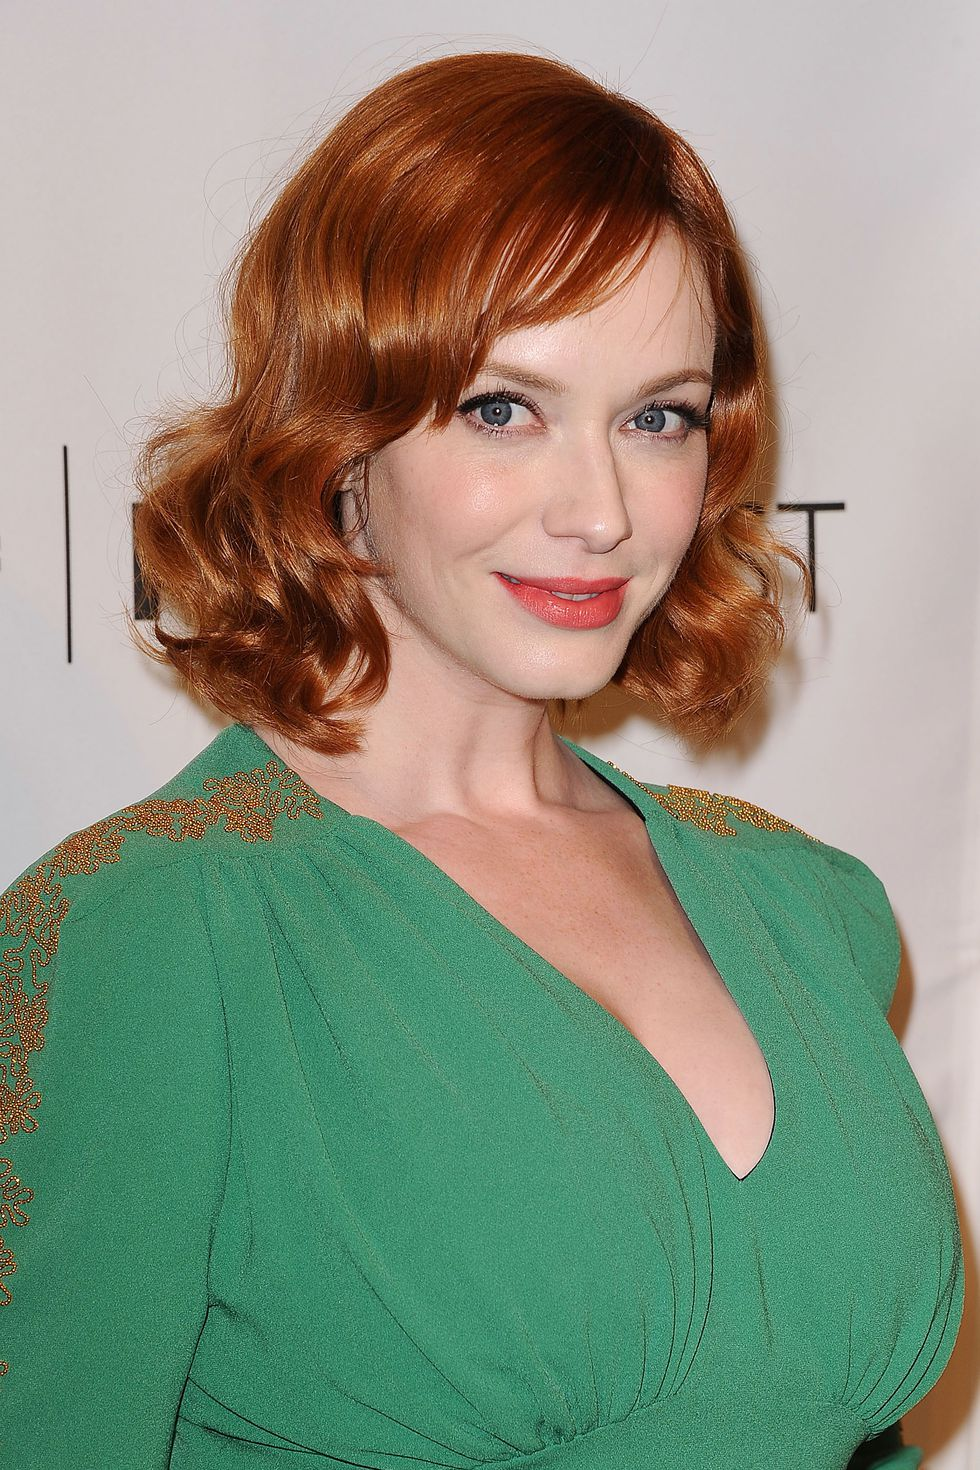 """RED: """"Cuivre"""" Hair   Get ready to see this French word, meaning """"copper,"""" all over the place as this shimmery shade of red grows in popularity. Think Julianne Moore with amped-up intensity and tons of glossiness."""